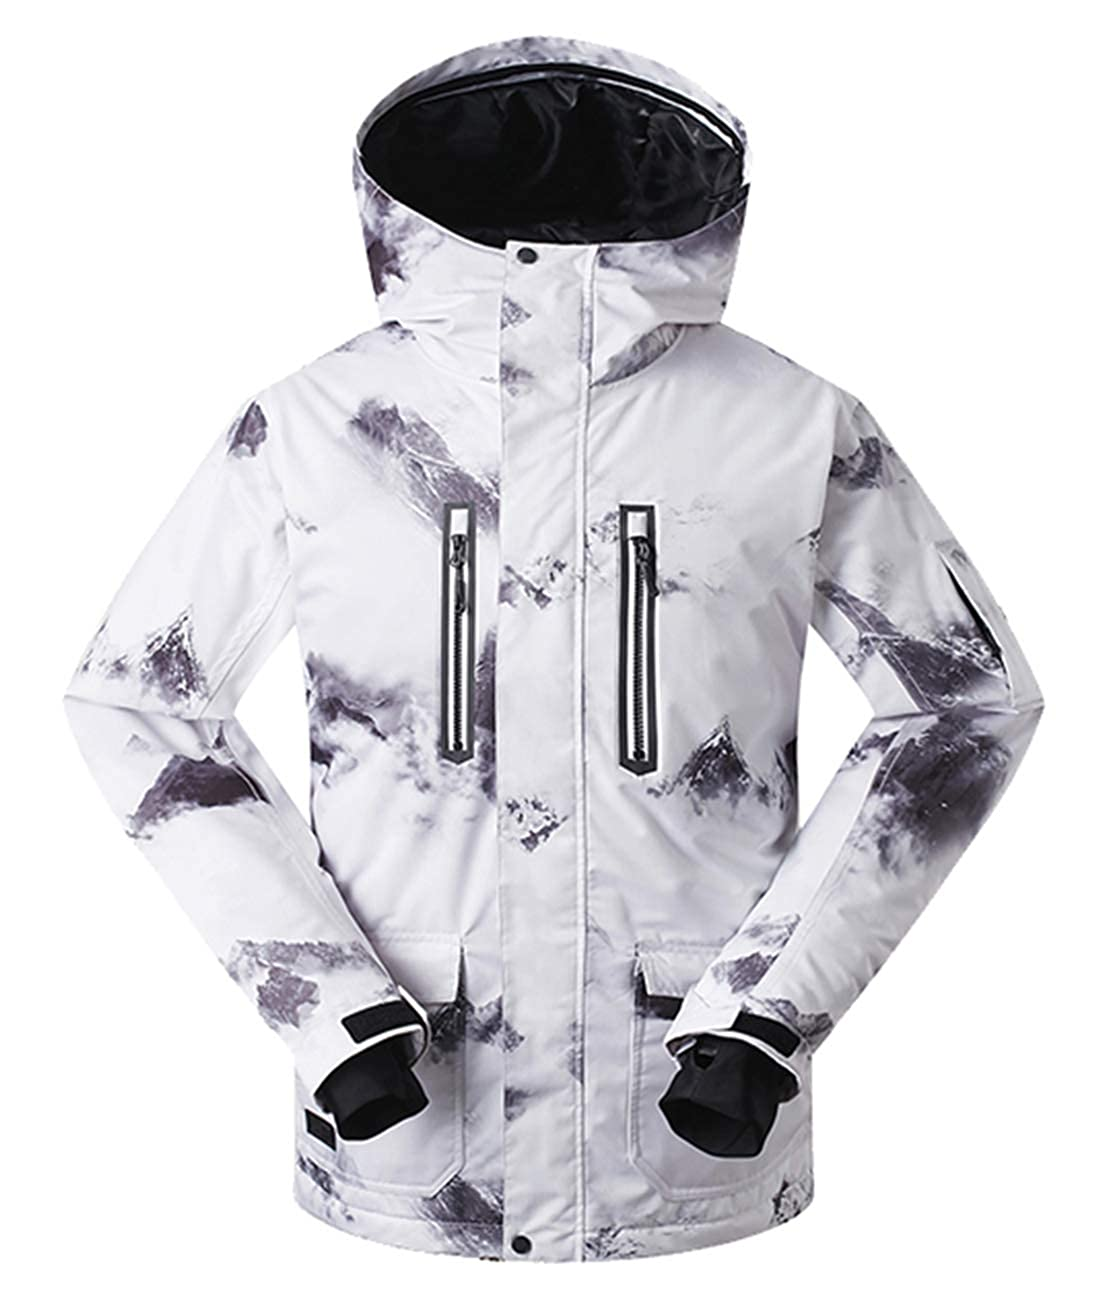 Image of Jackets APTRO Men's Bright Colored Insulated Waterproof Windproof Ski & Snowboard Jacket